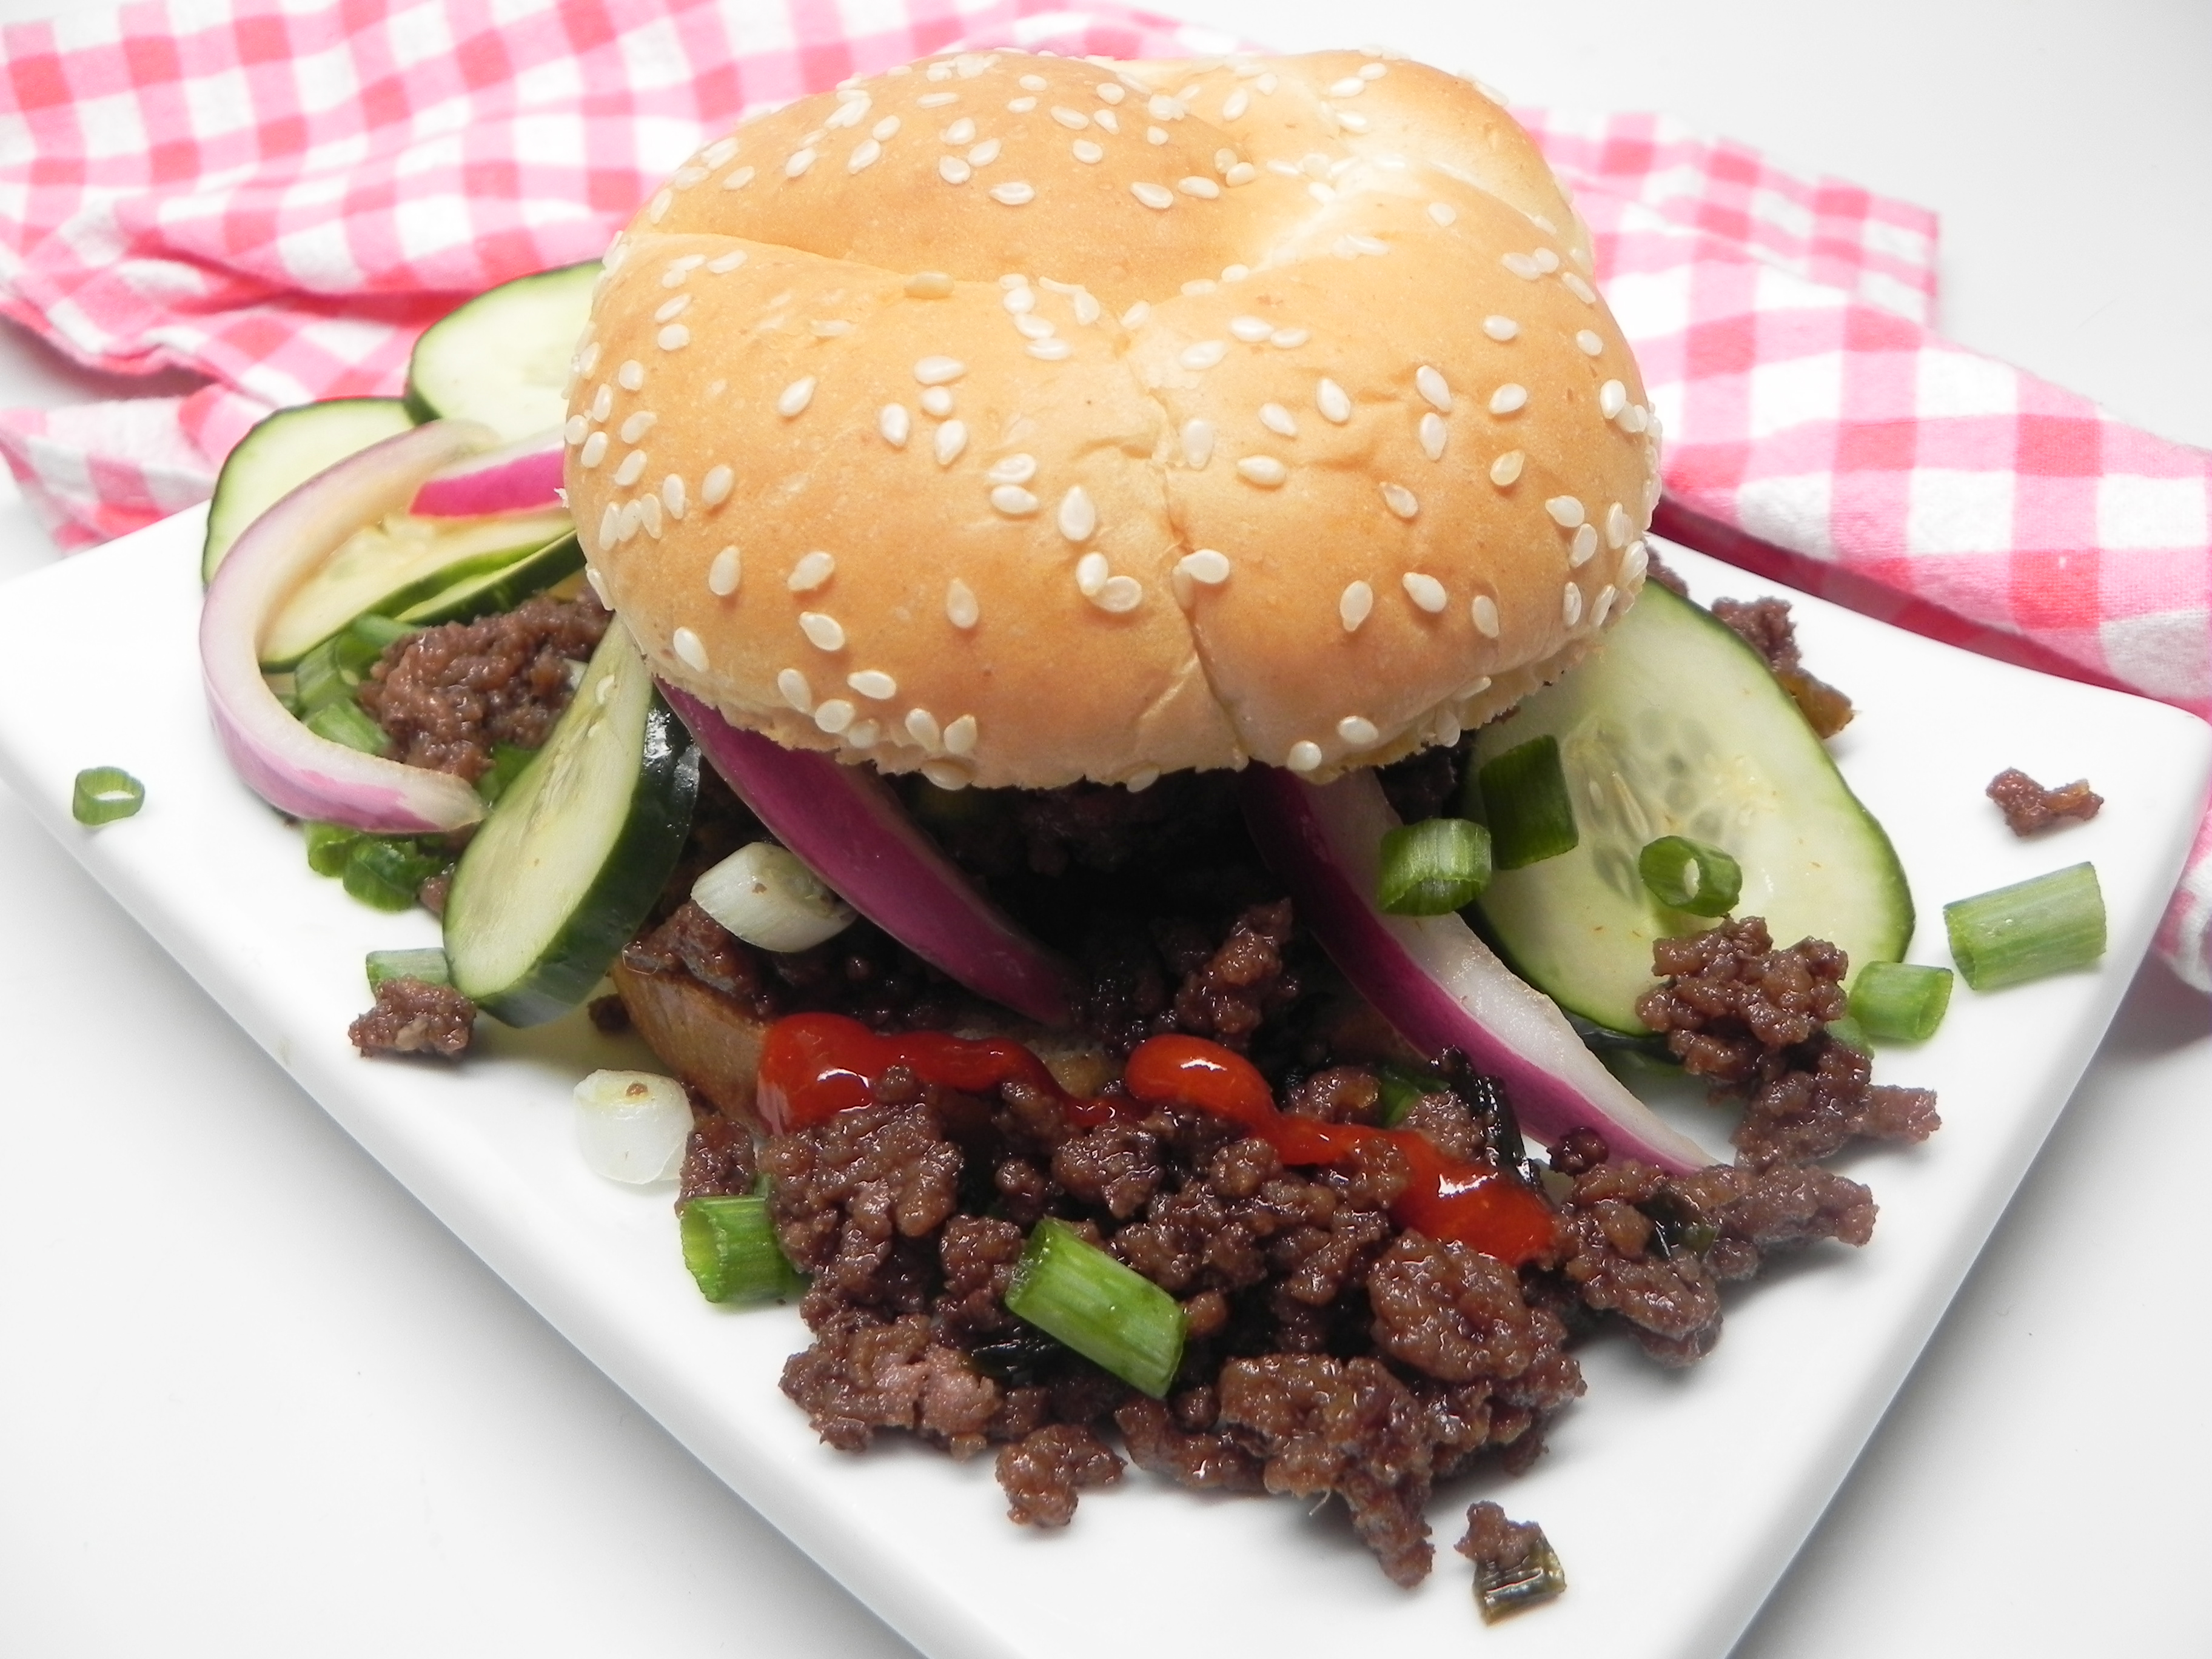 This recipe takes a tangy American classic and mashes it up with the spicy flavors of Korean bulgogi to create an instant hit. Sriracha sauce, garlic puree, ginger paste, soy sauce, and ginger paste provide big, big flavor in this phenomenal, 5-star fusion.